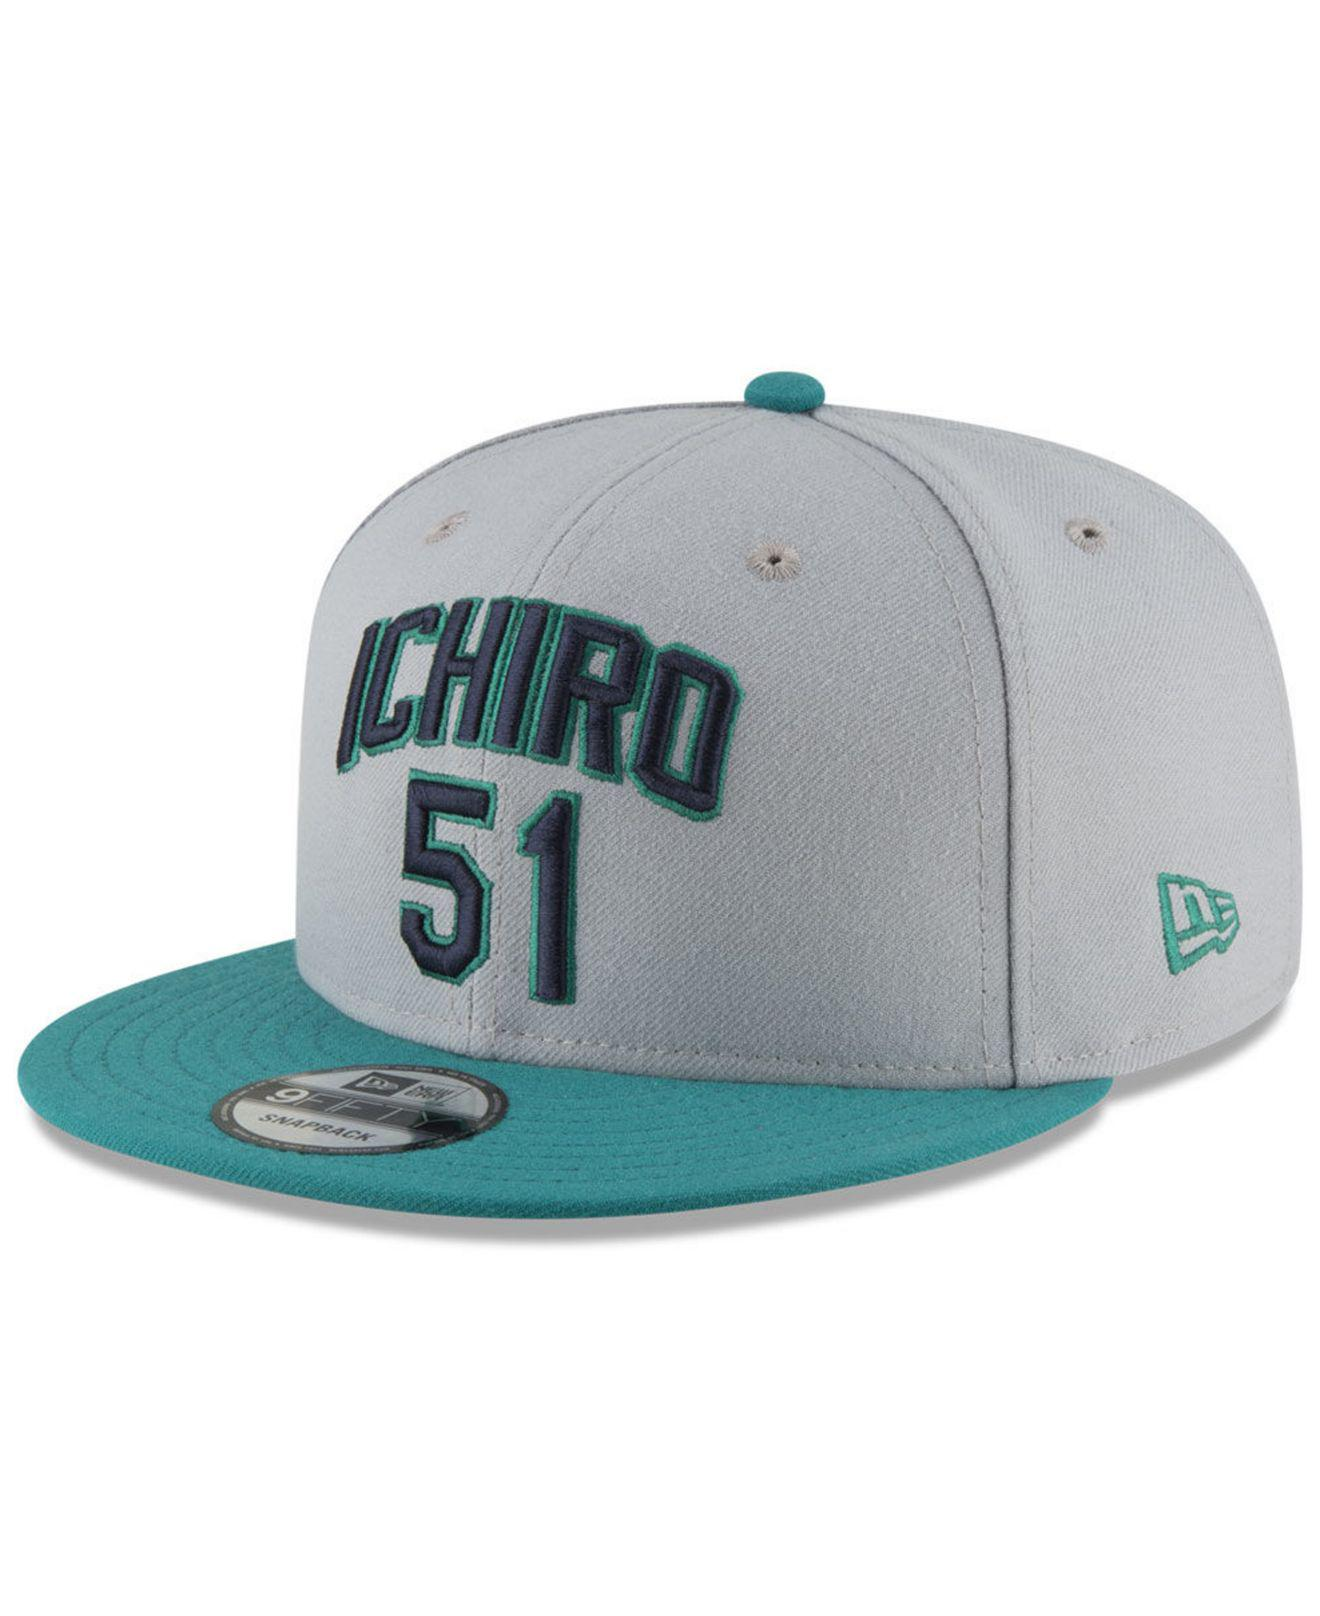 timeless design e3eb8 aaf17 ... coupon code for seattle mariners ichiro pack 9fifty snapback cap for men  lyst. view fullscreen